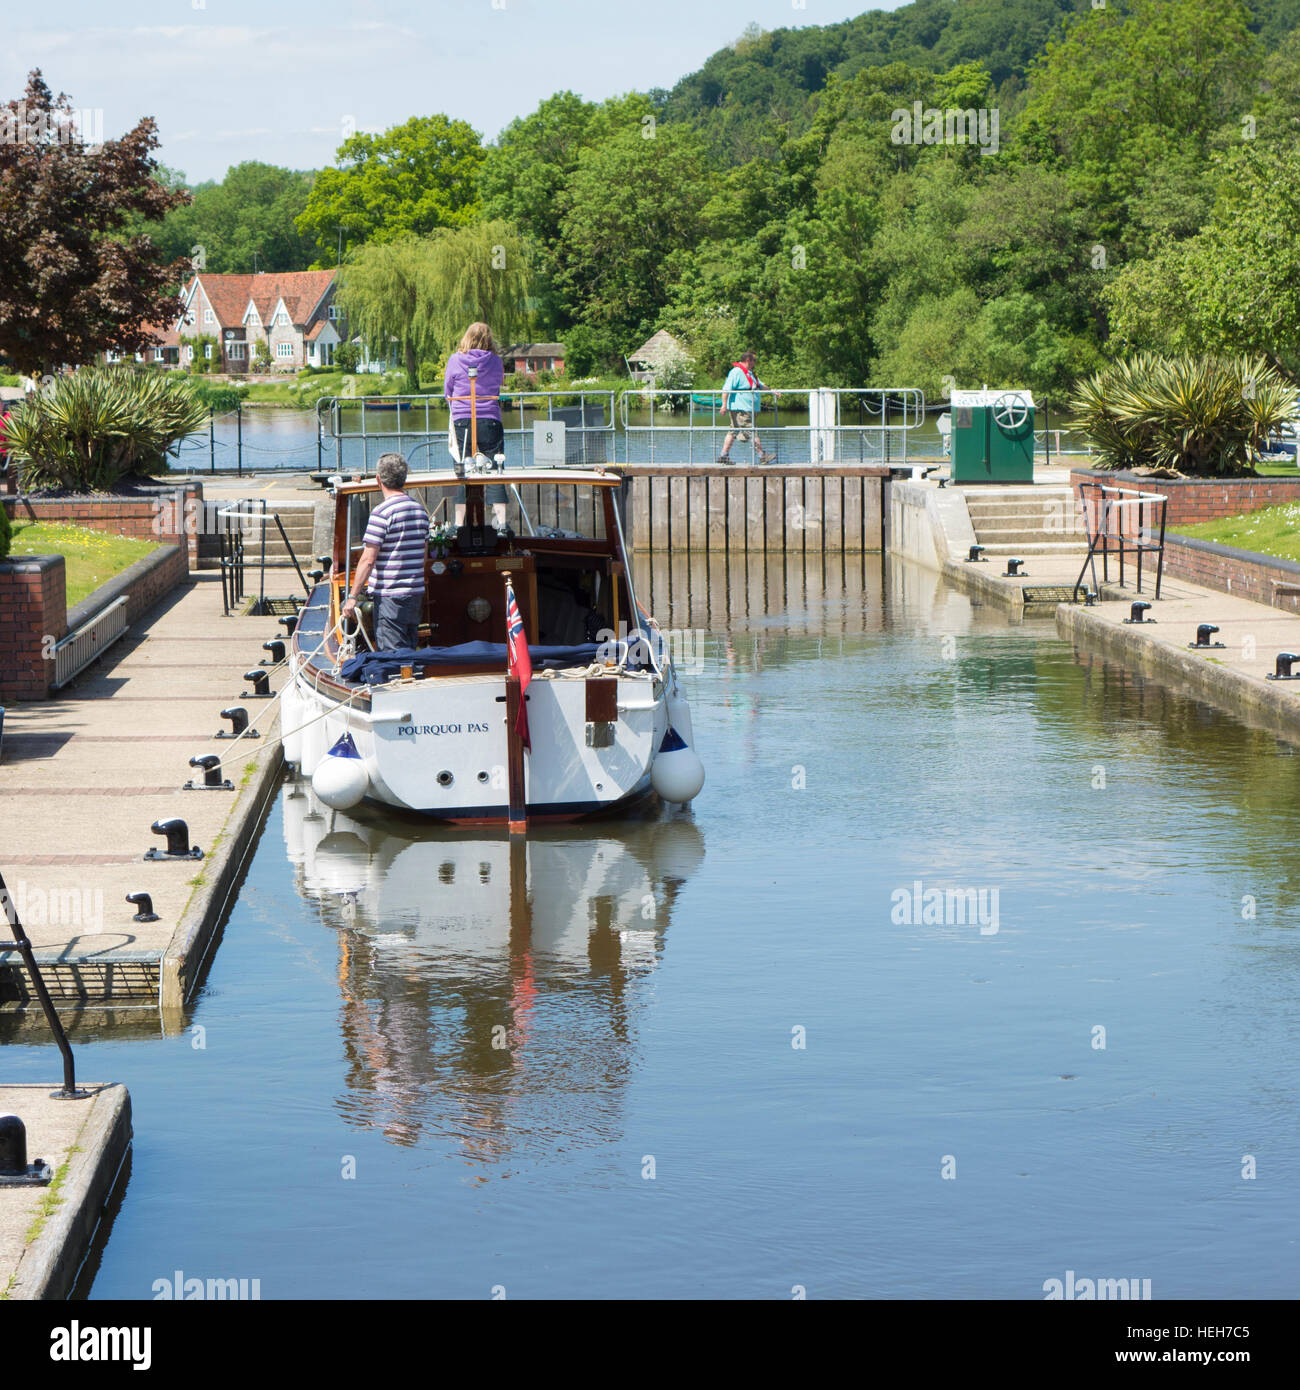 Motor boat passing through Hambleden lock, River Thames, Berkshire, England, UK - Stock Image